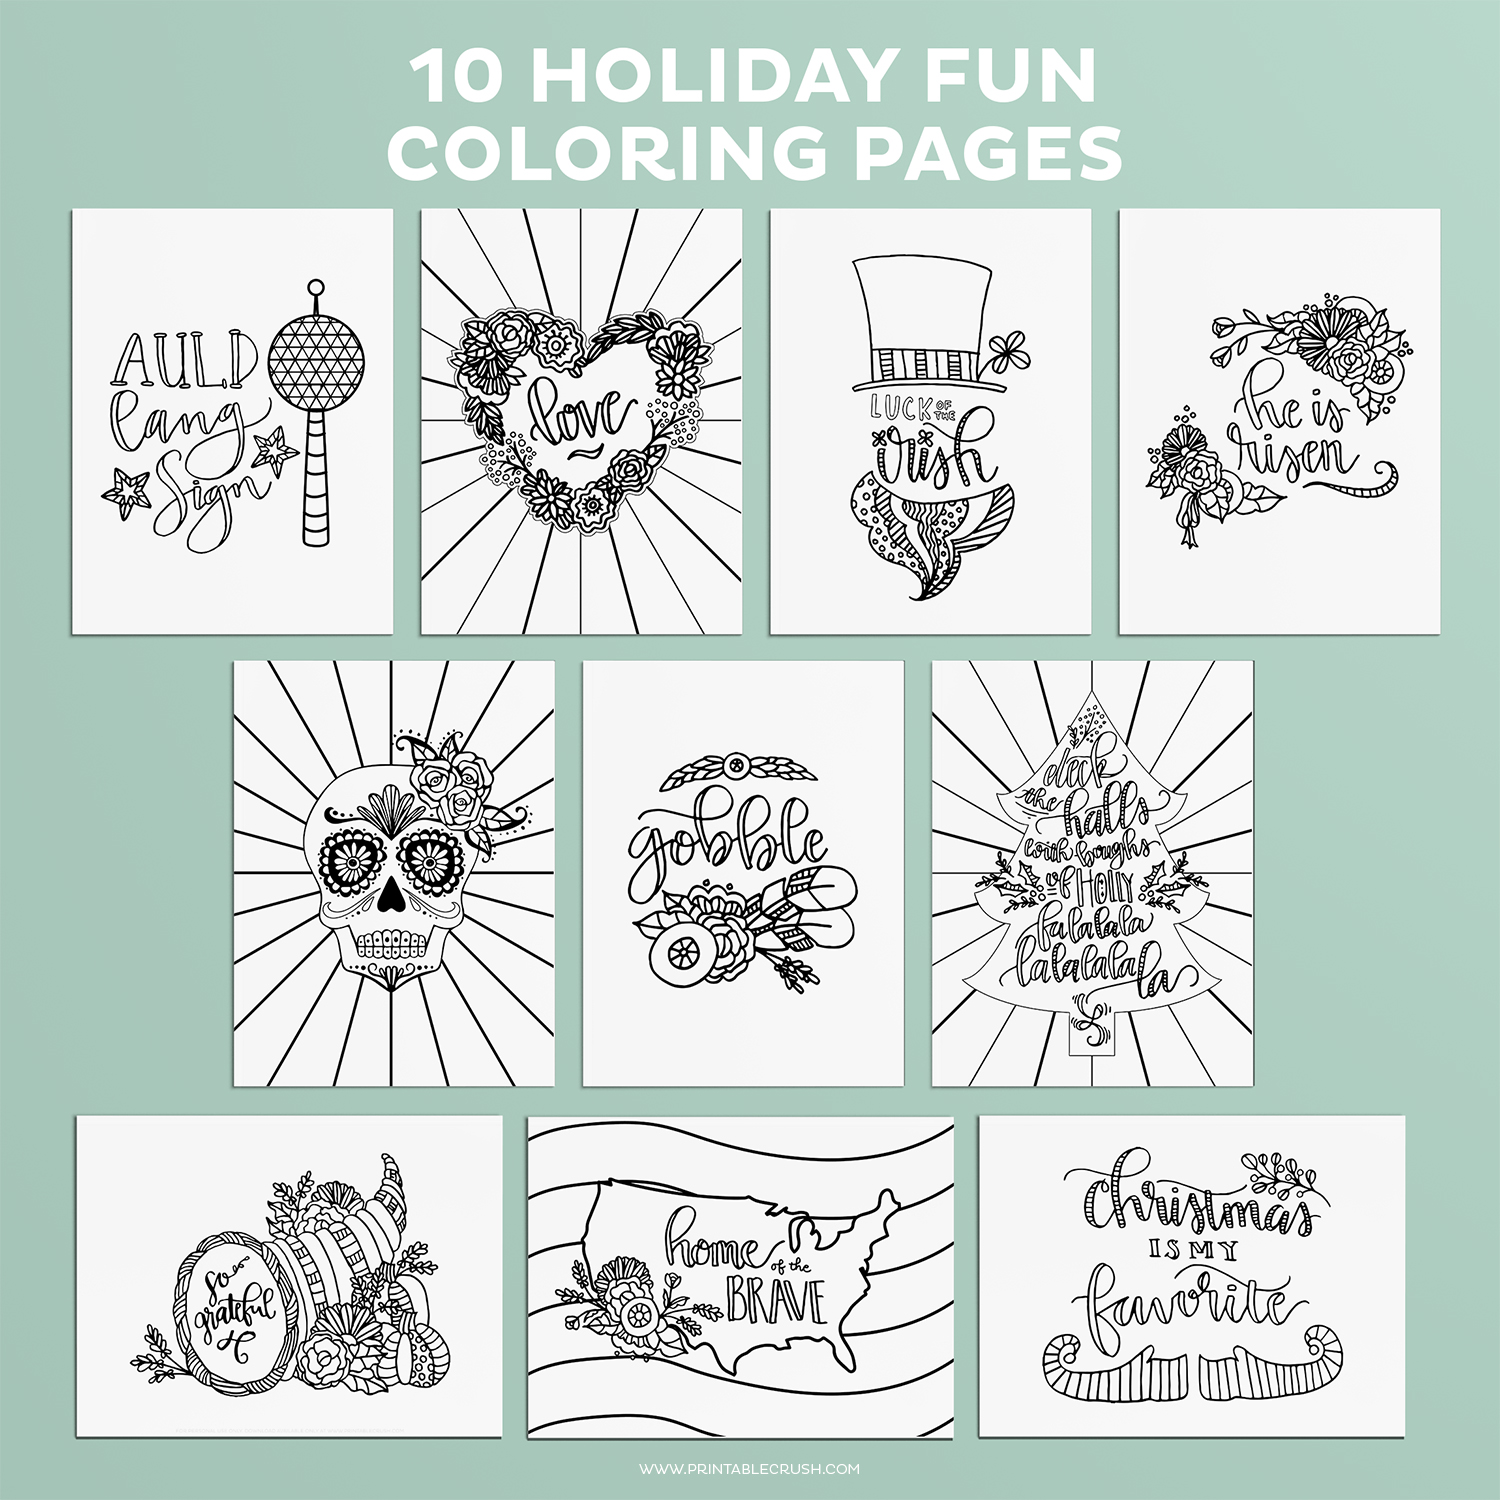 Thanksgiving coloring pages and other holidays against teal background